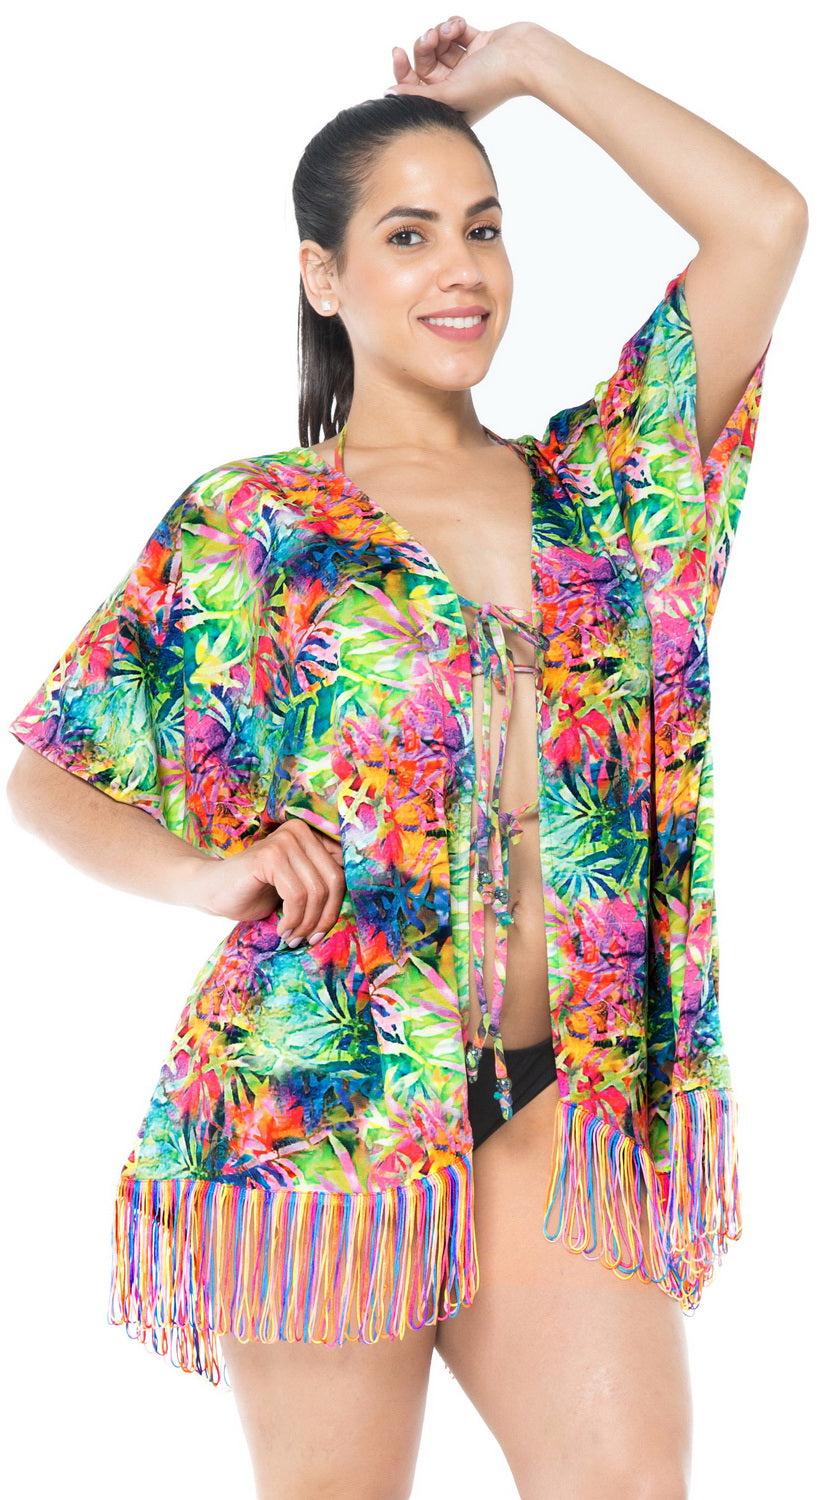 la-leela-digital-hd-kimono-cardigan-cover-up-osfm-14-18-l-2xmulticolor_1781-multicolor_i57